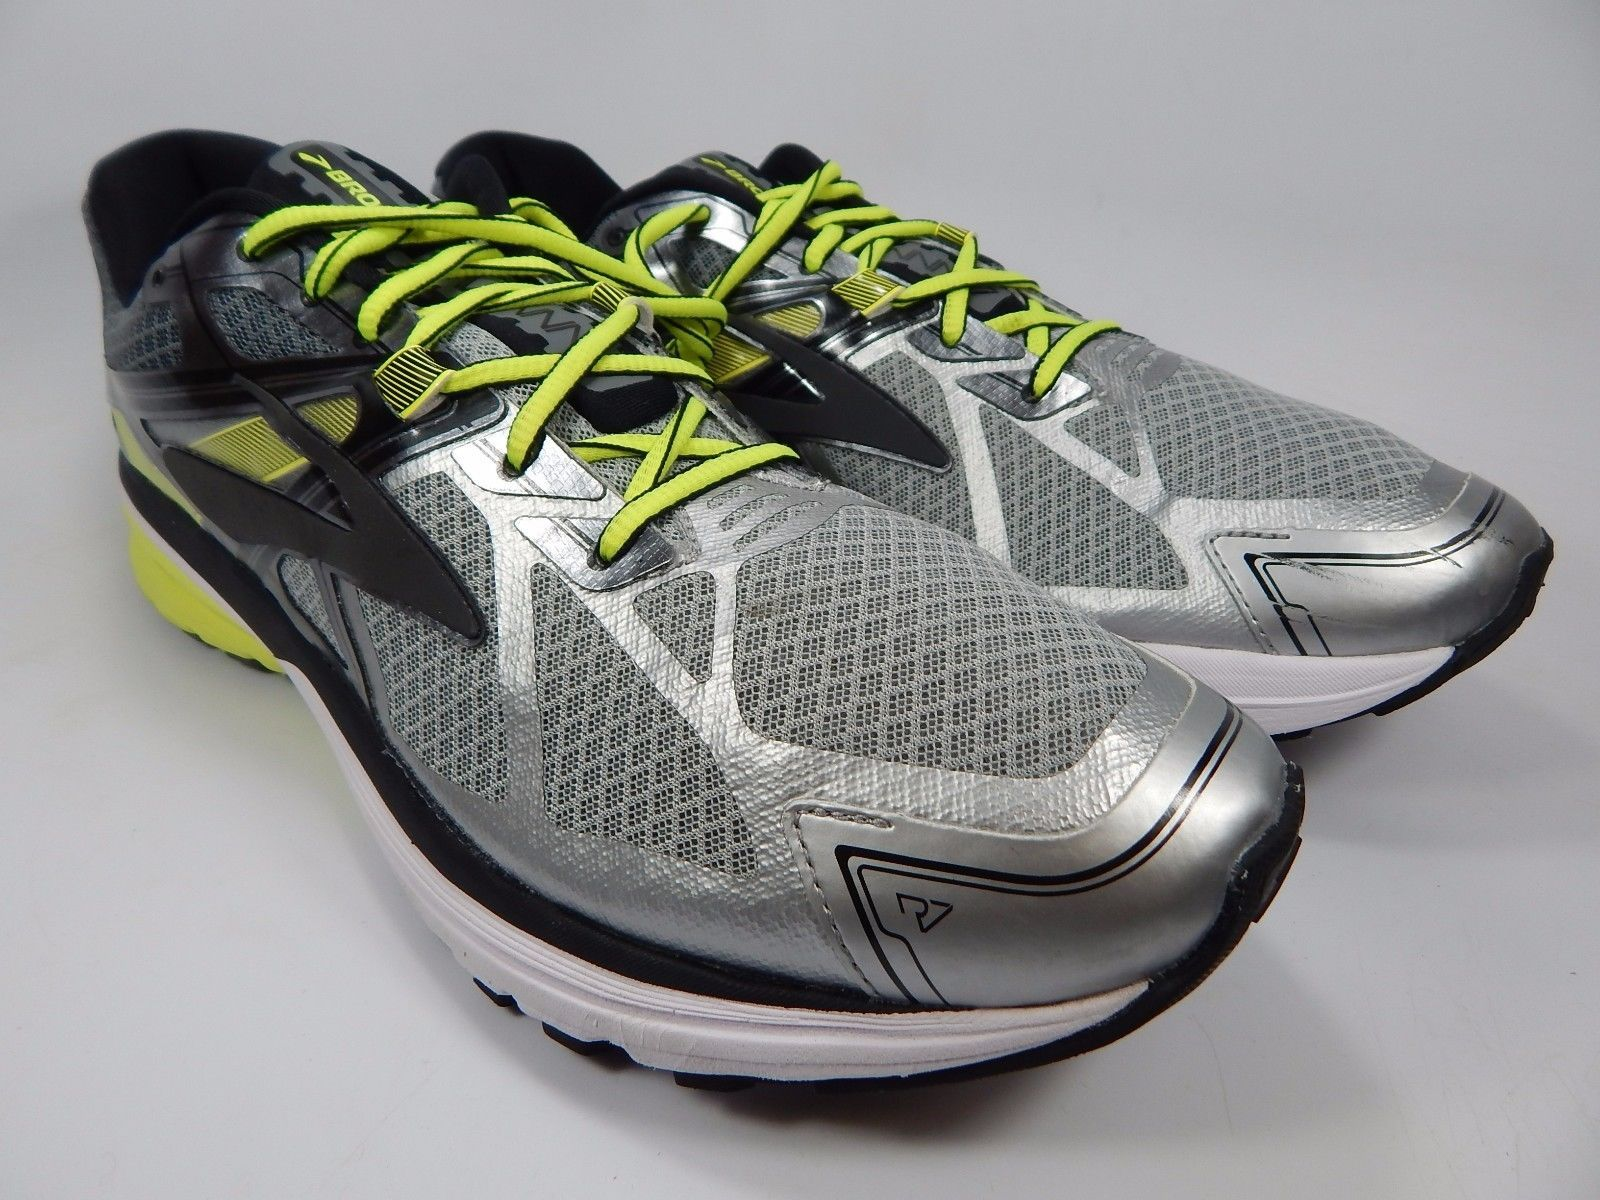 Brooks Ravenna 7 Men's Running Shoes Size US 13 M (D) EU 47.5 Silver 1102171D116